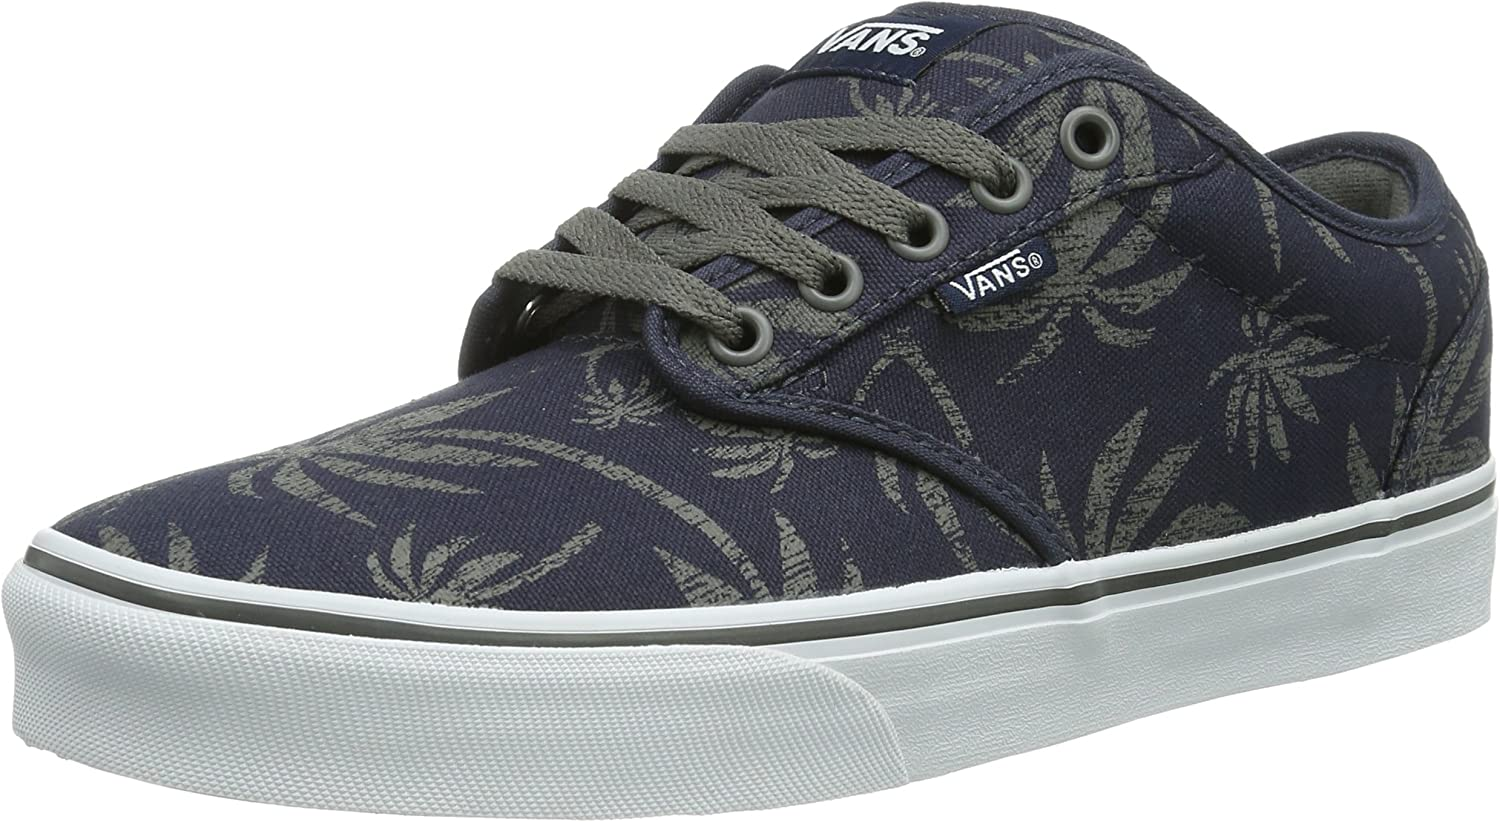 Vans Daily bargain sale Low price Men's Atwood Canvas' Skateboarding Shoes